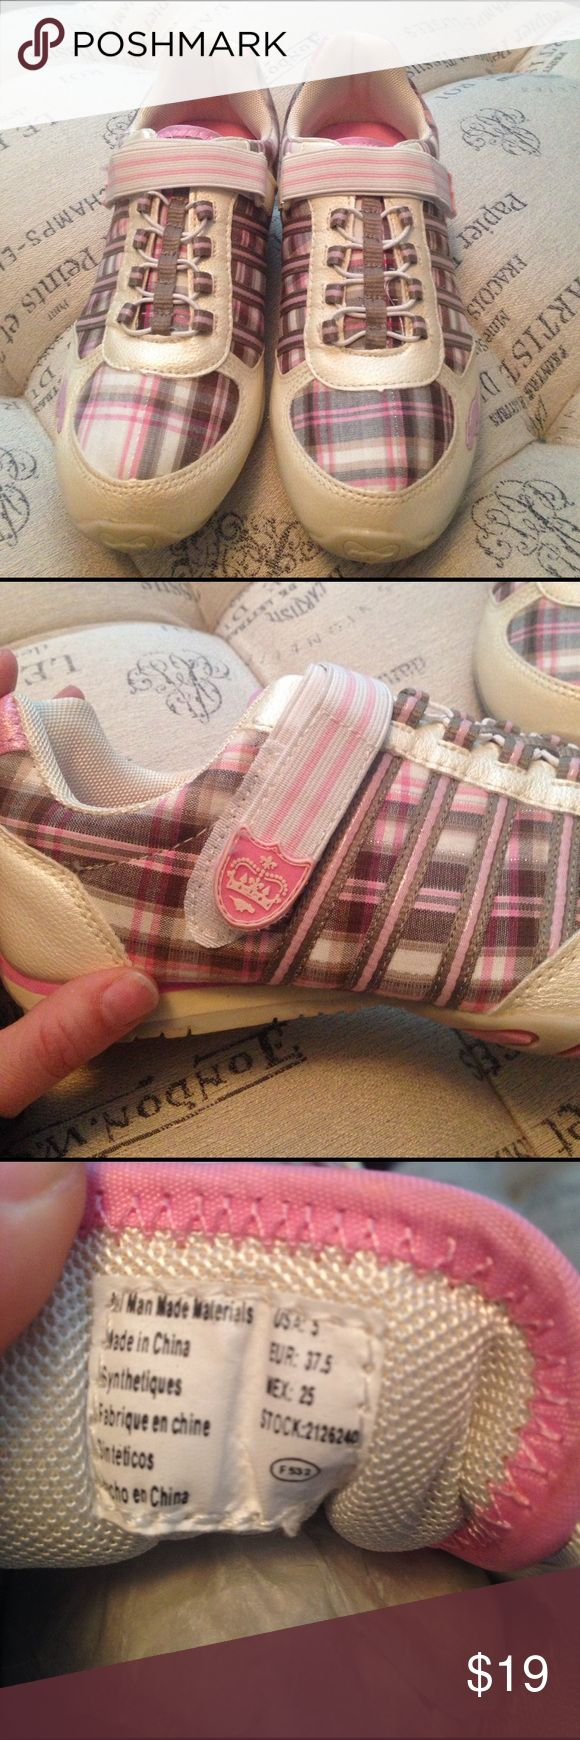 Rocket Dog plaid pink sneaked size 5 Brand New never worn Rocket Dog pink plaid sneakers size 5 girls Rocket Dog Shoes Sneakers